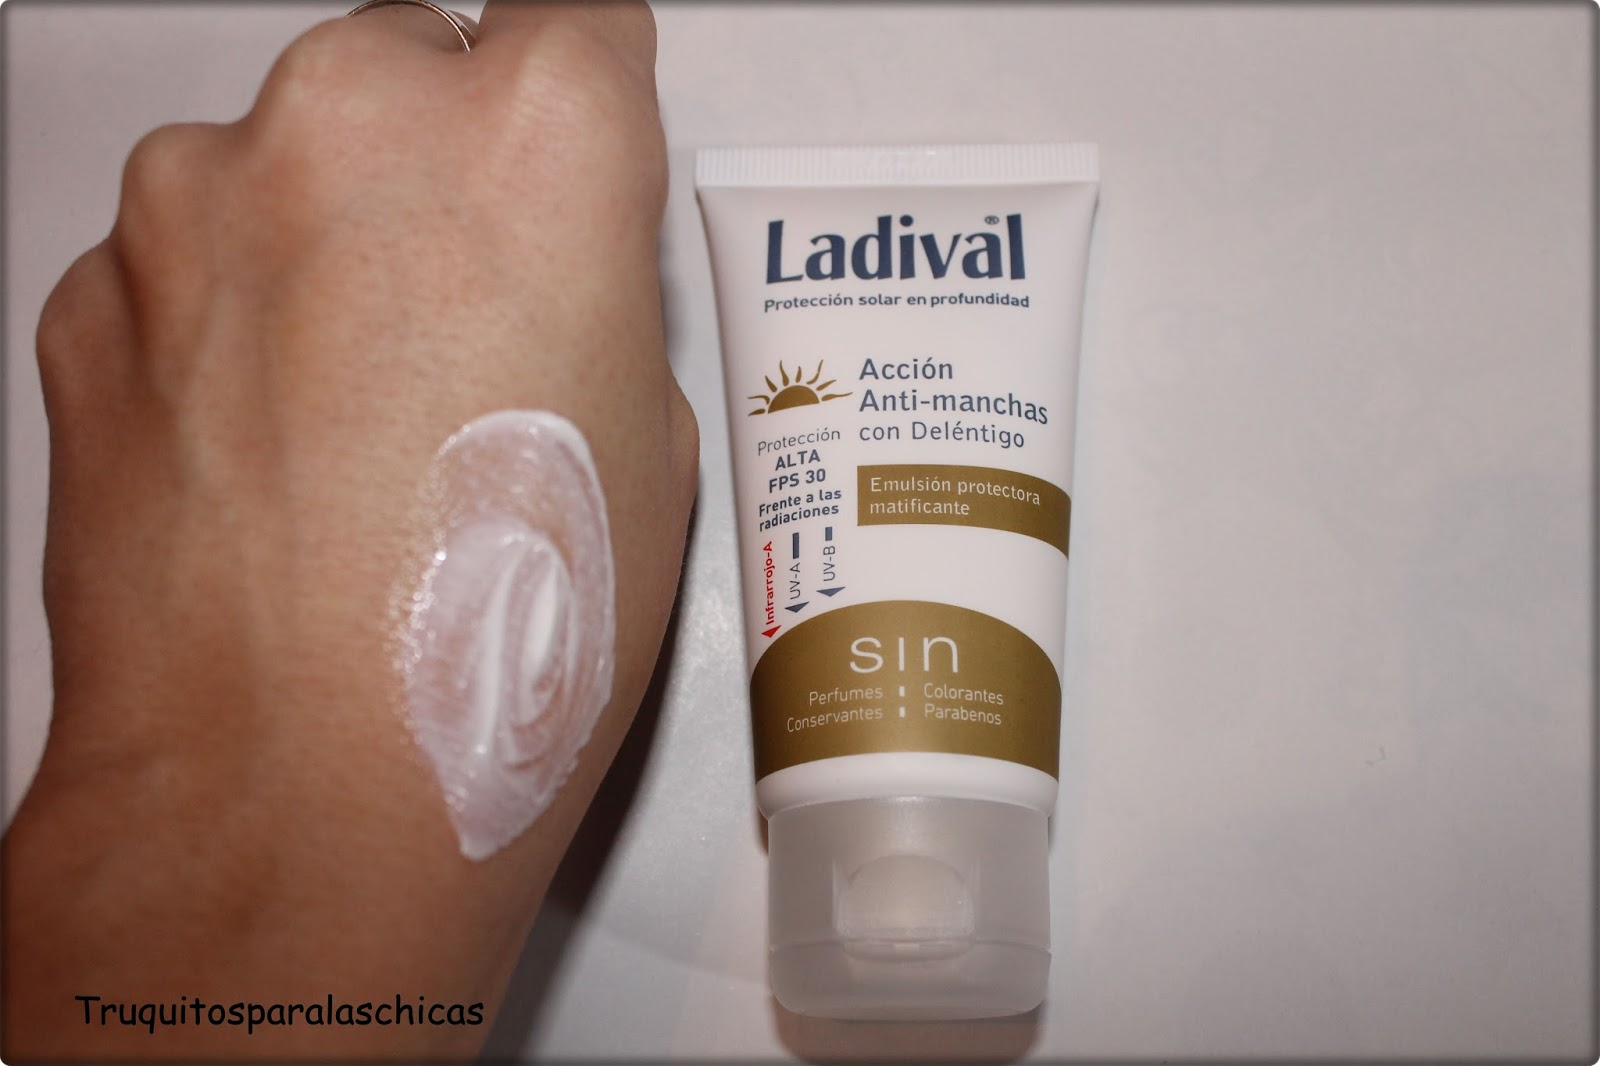 crema antimanchas ladival